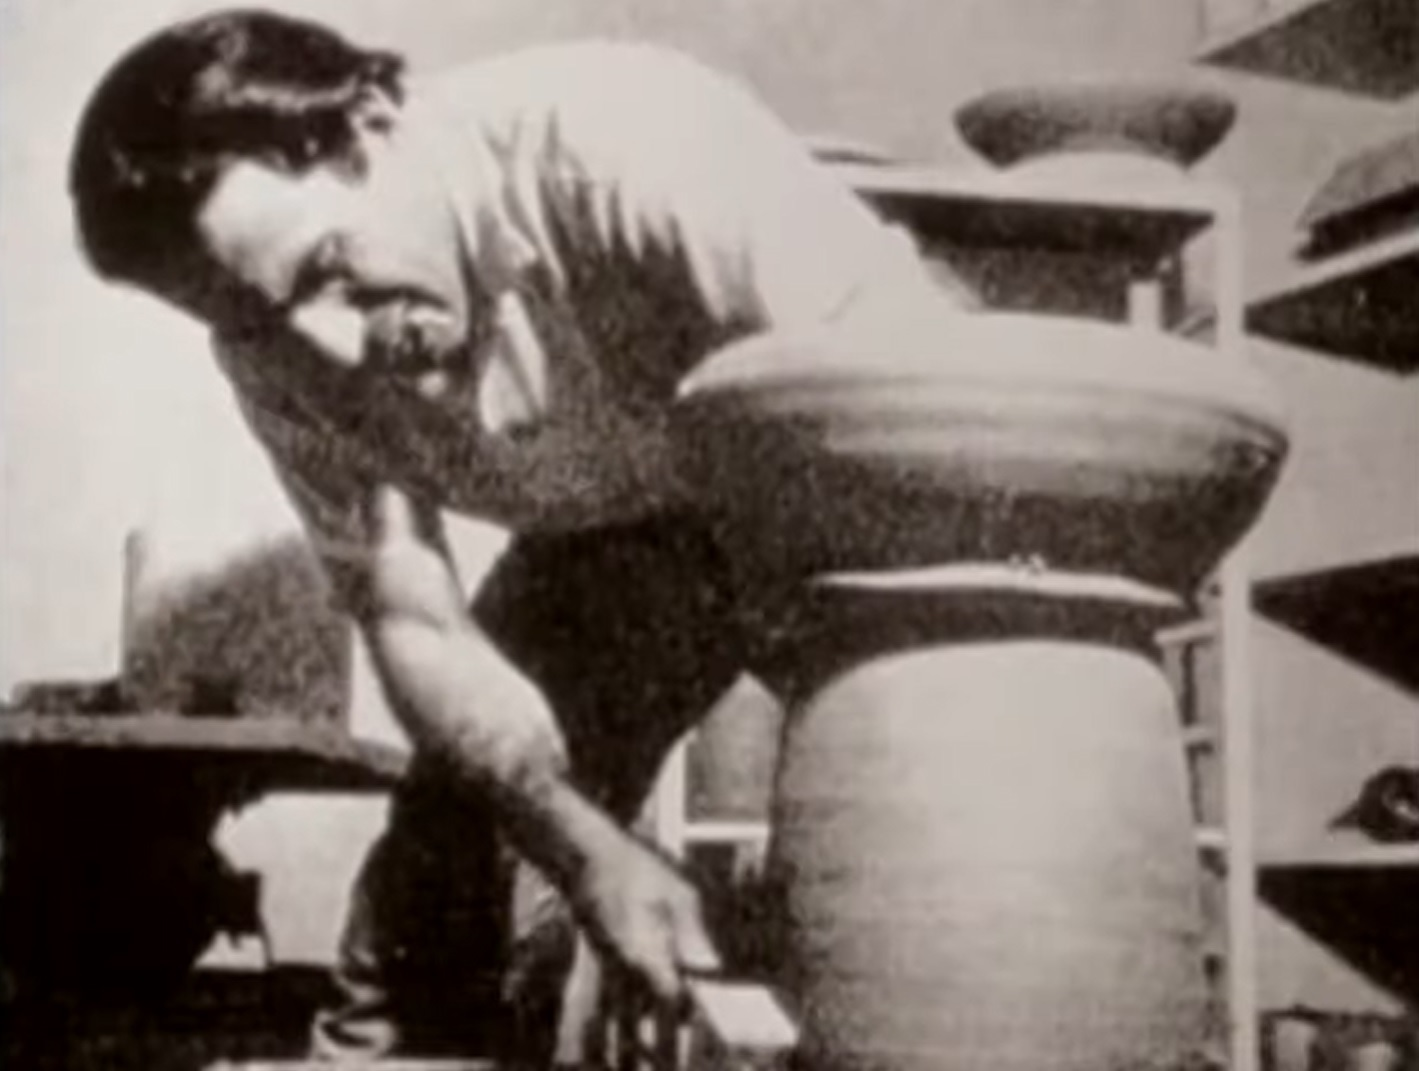 Black and white archive image of a person shaping a ceramic object